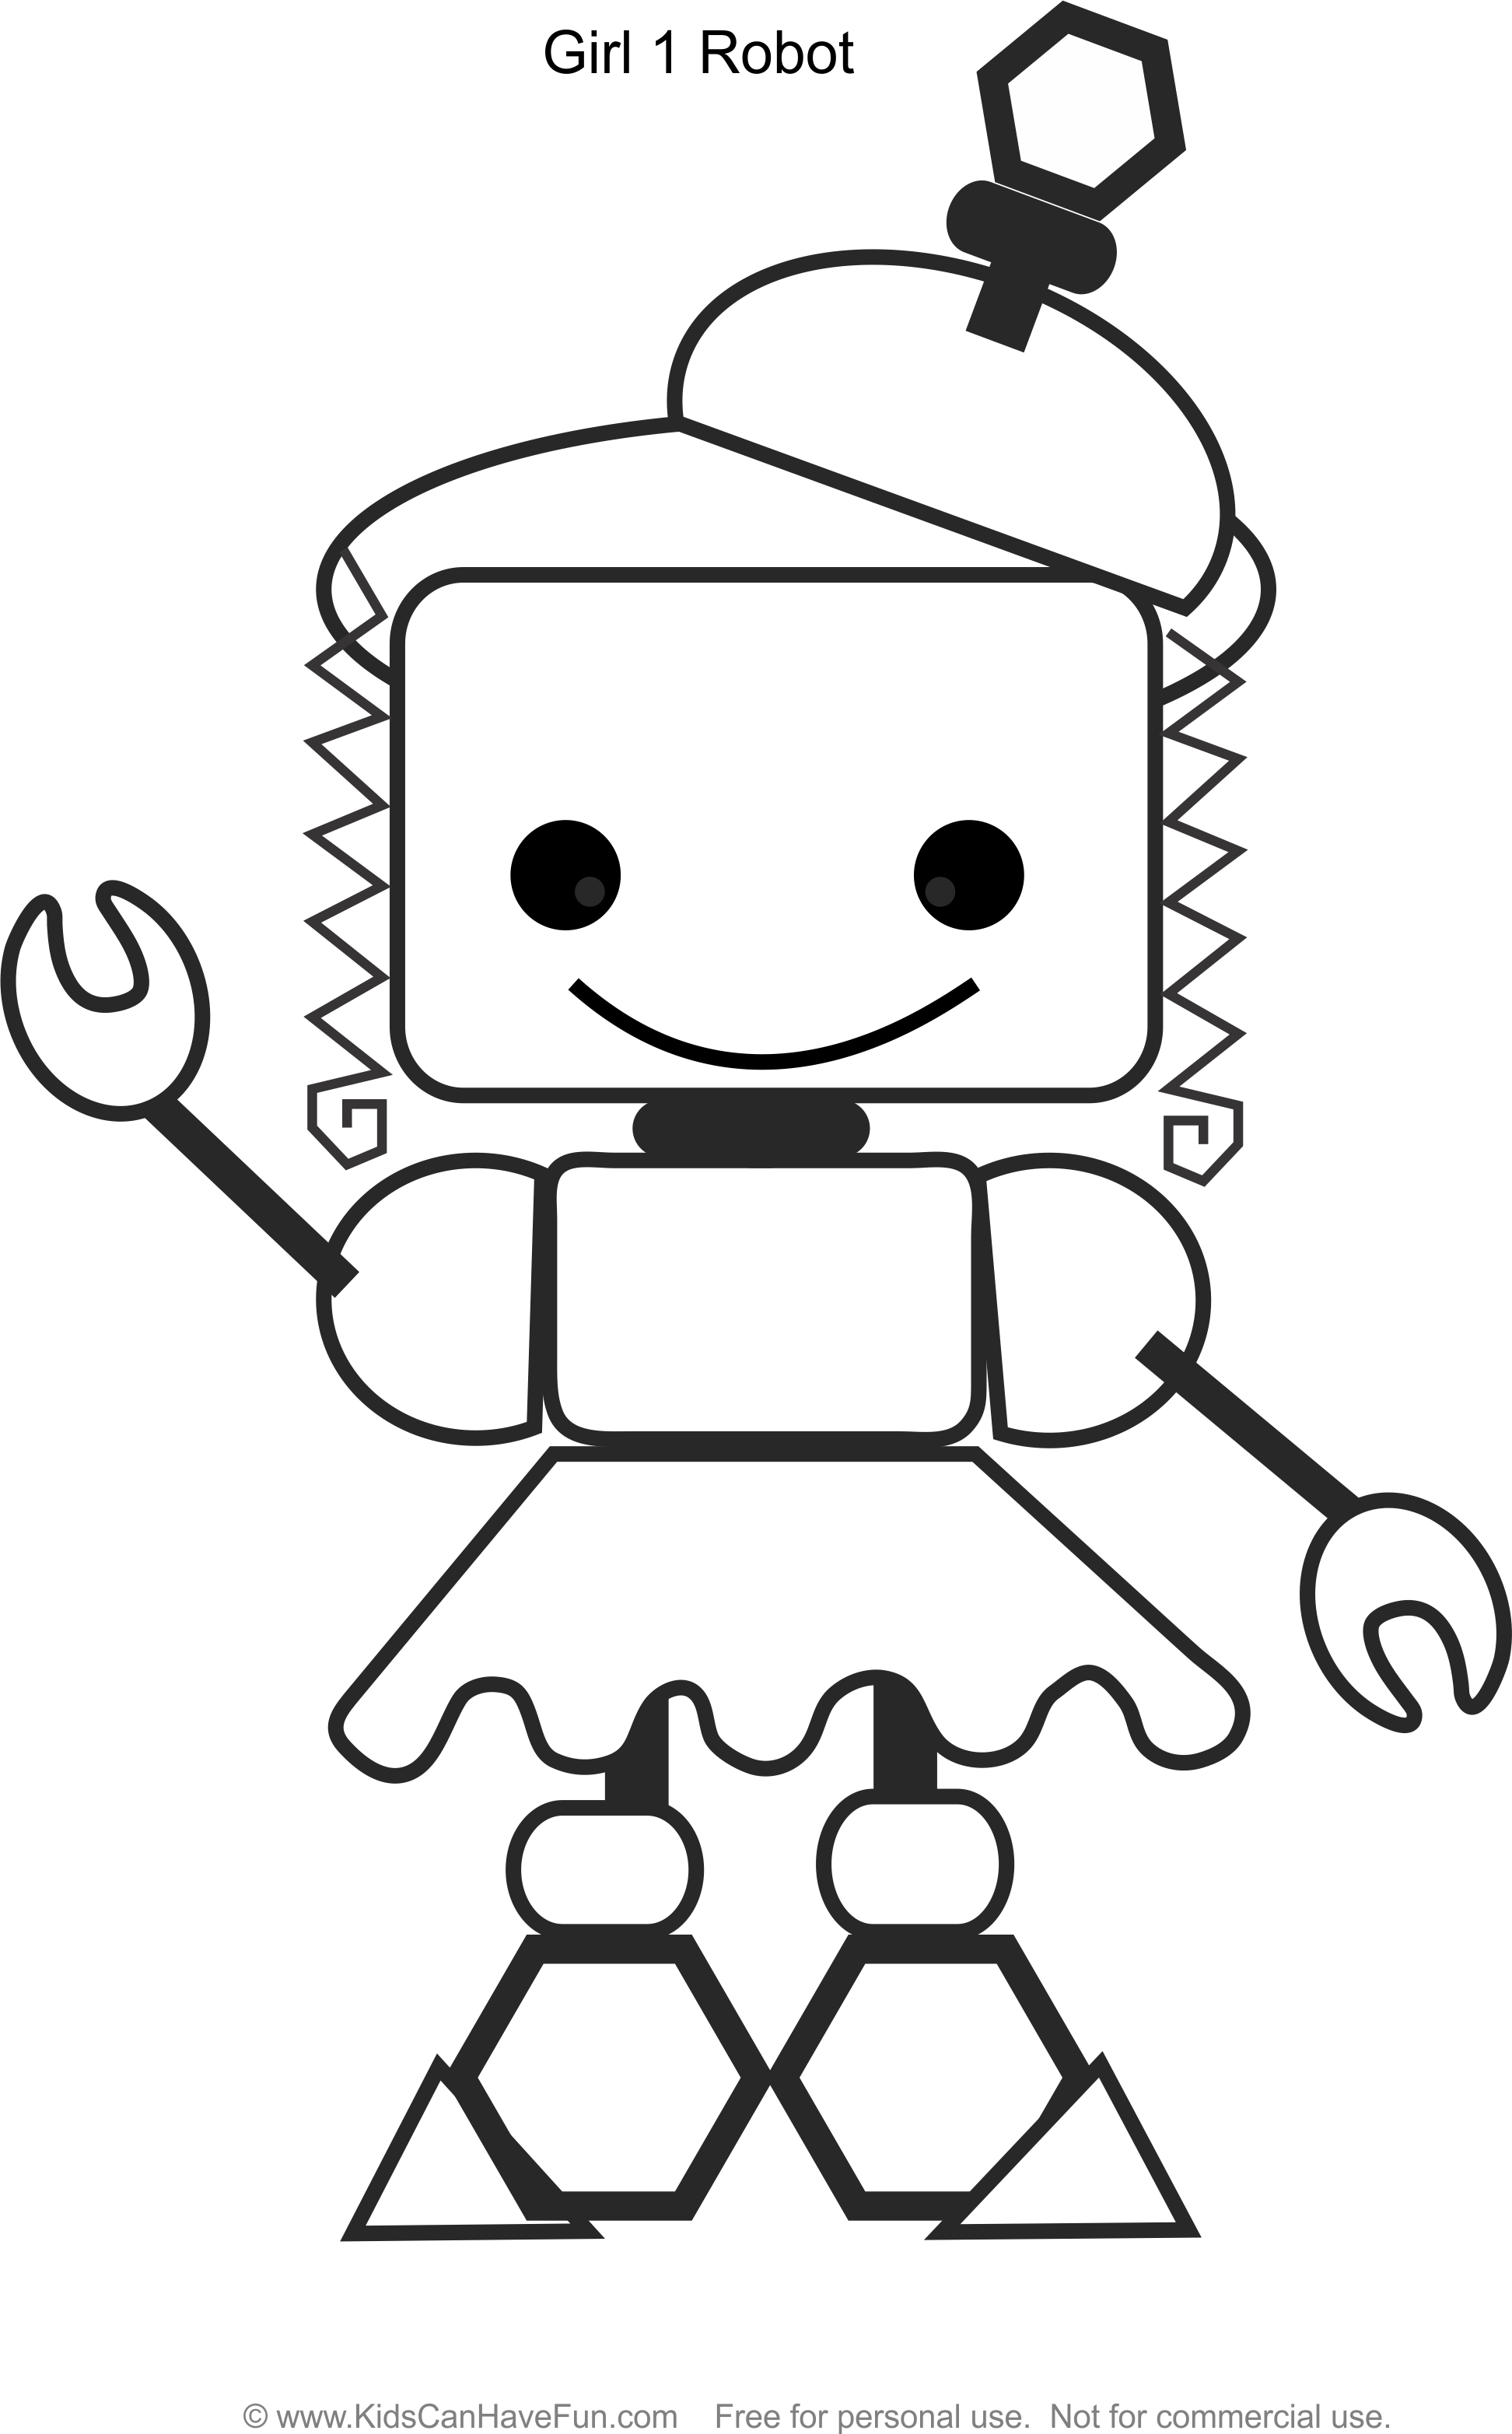 Pin By Kidscanhavefun Com On Robot Coloring Pages Robot Girl